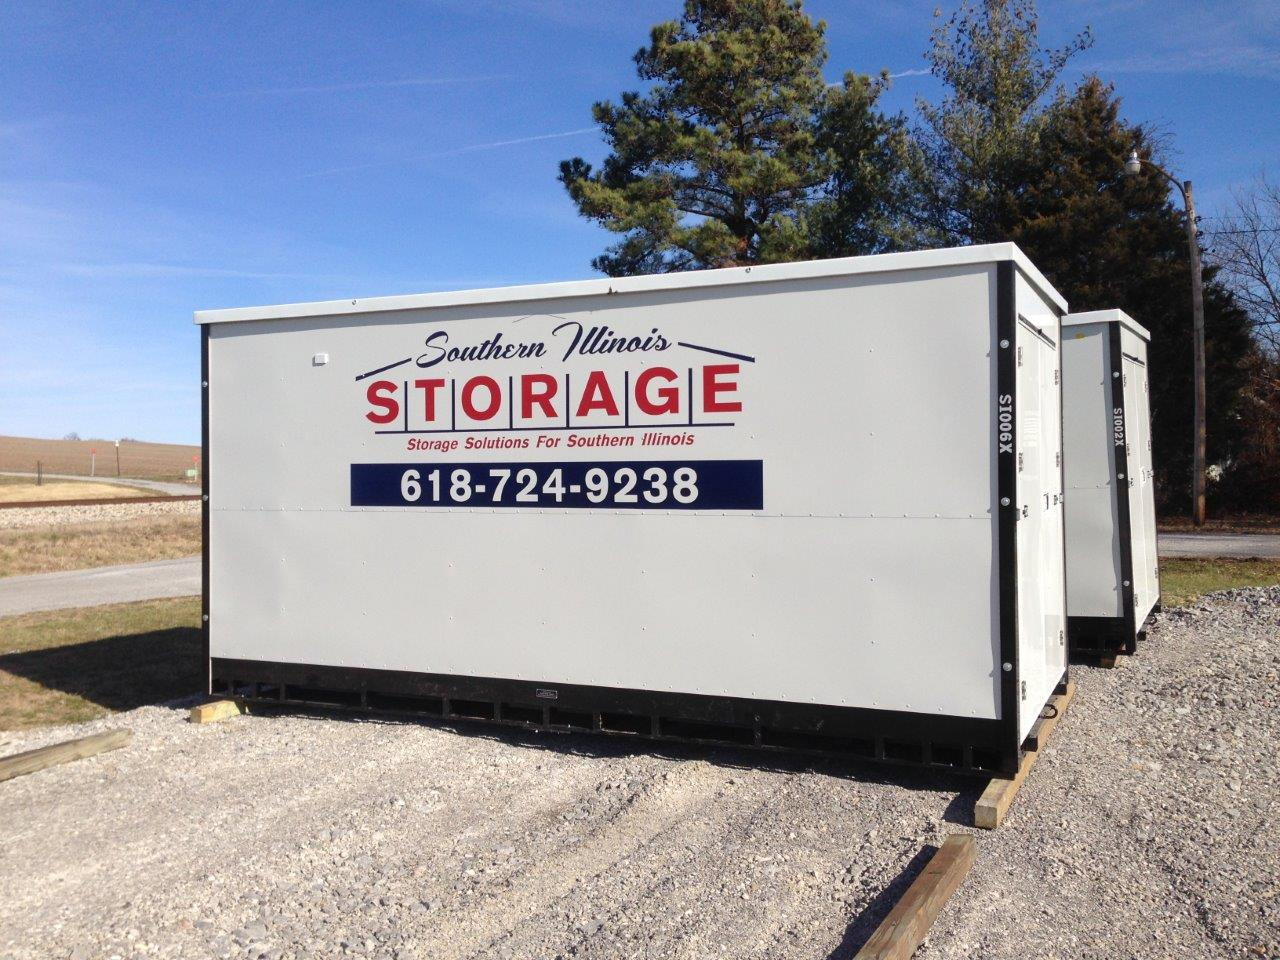 Southern Illinois Storage 618-724-9238